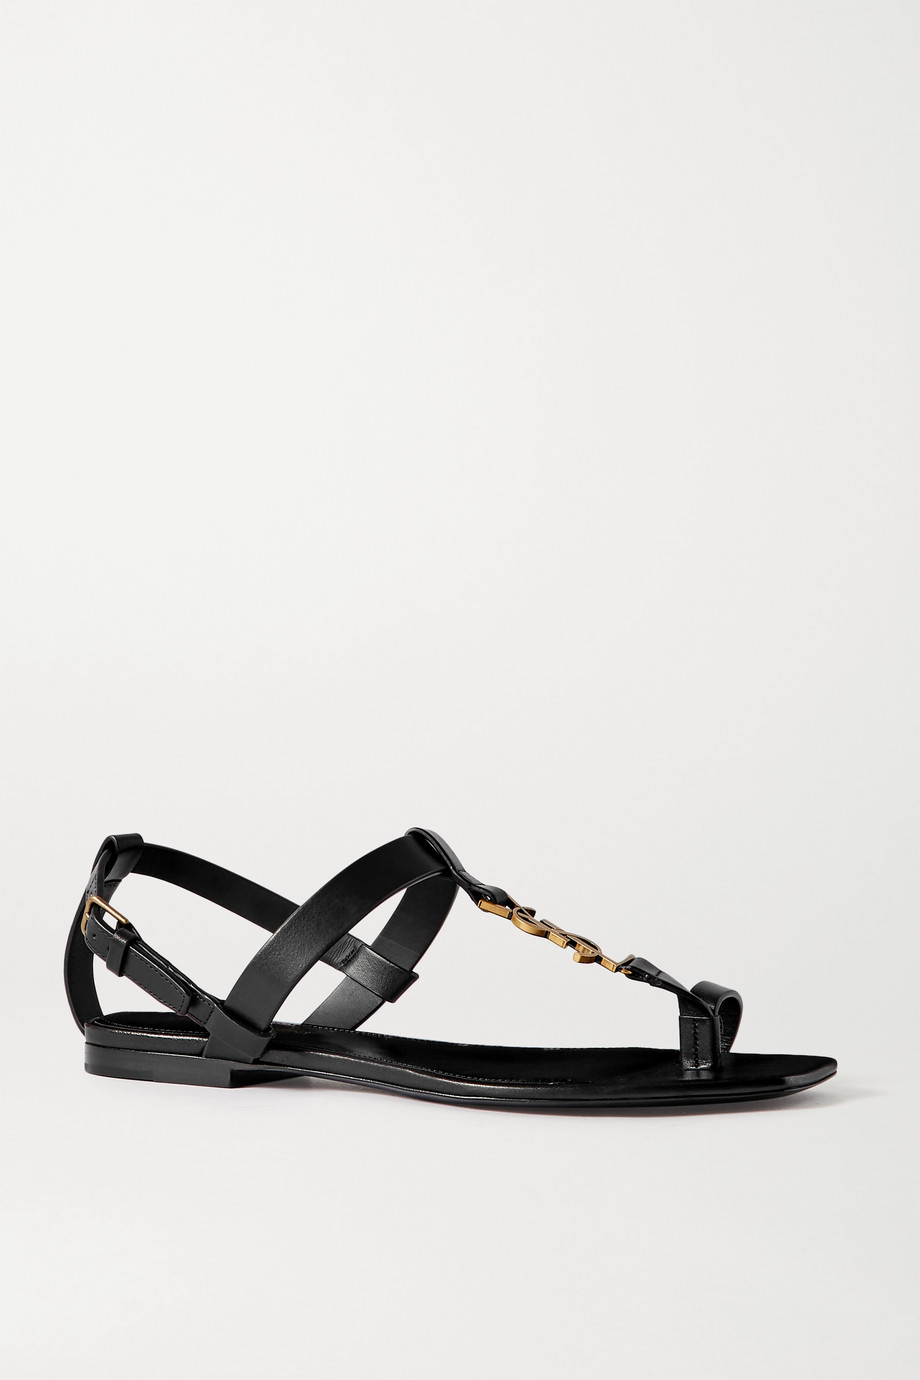 SAINT LAURENT Cassandra logo-embellished leather sandals